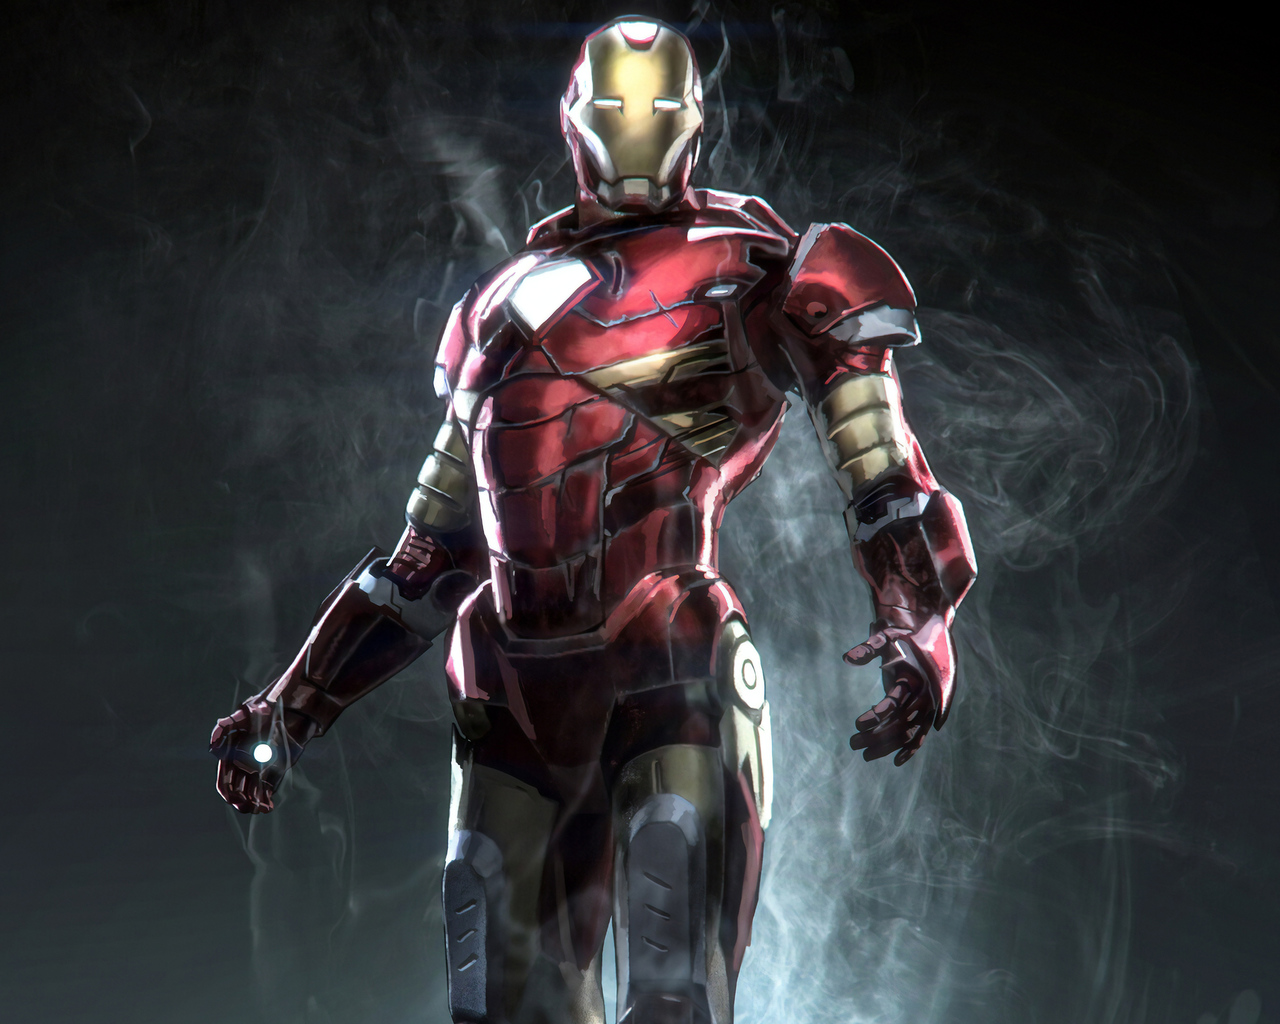 iron-man-marvel-superhero-98.jpg